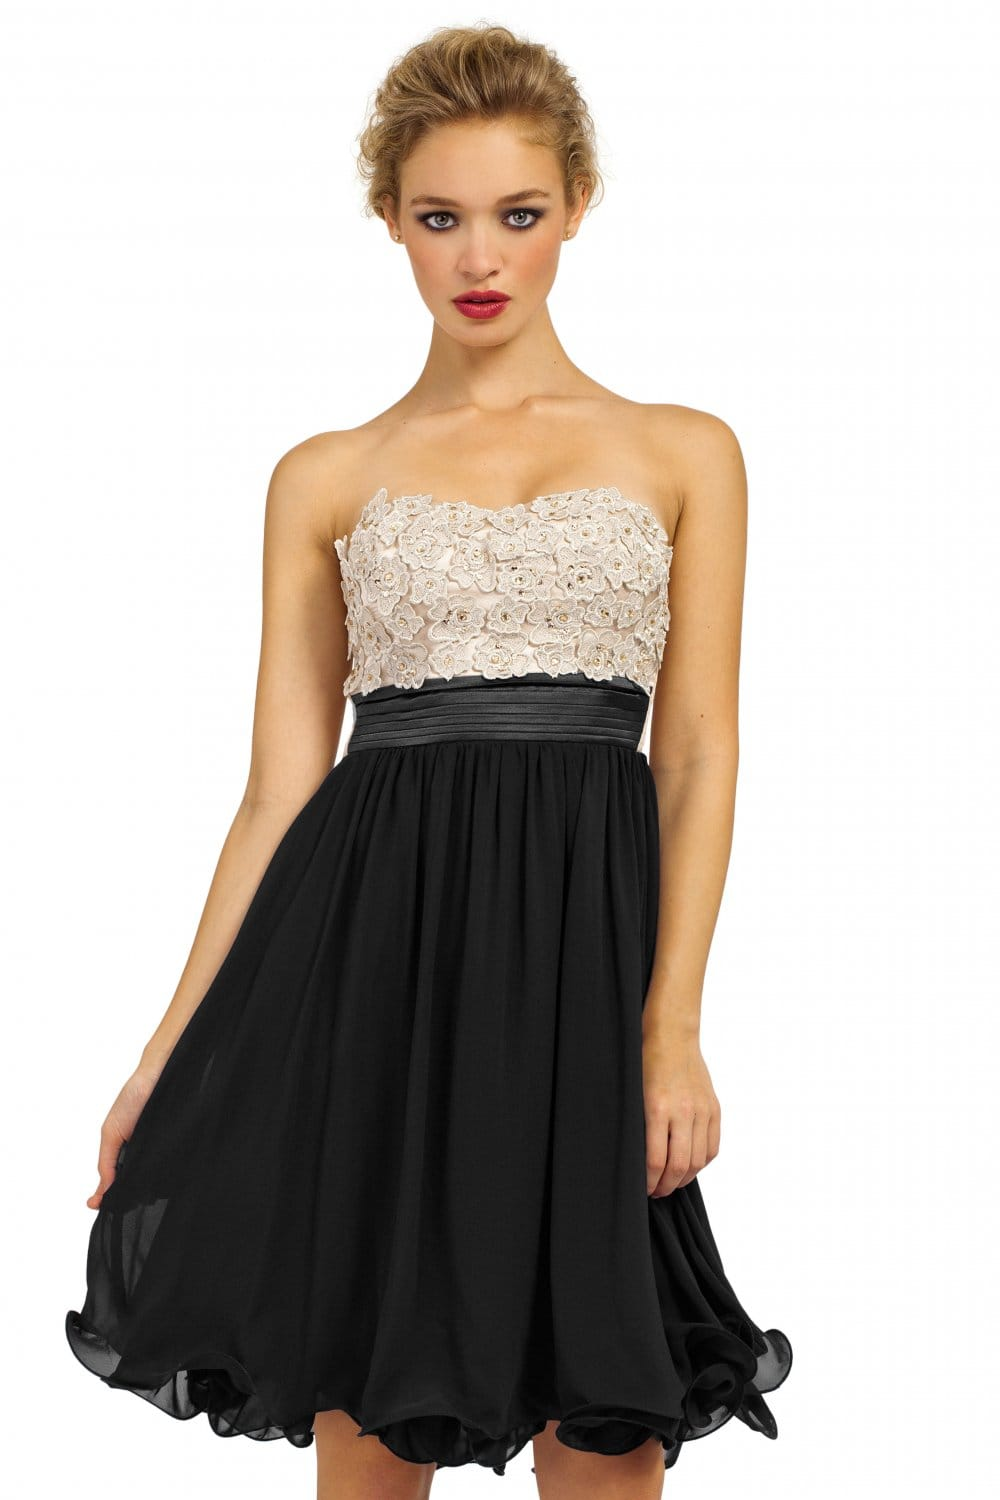 Cream & Black Embellished Floral Applique Chiffon Prom Dress